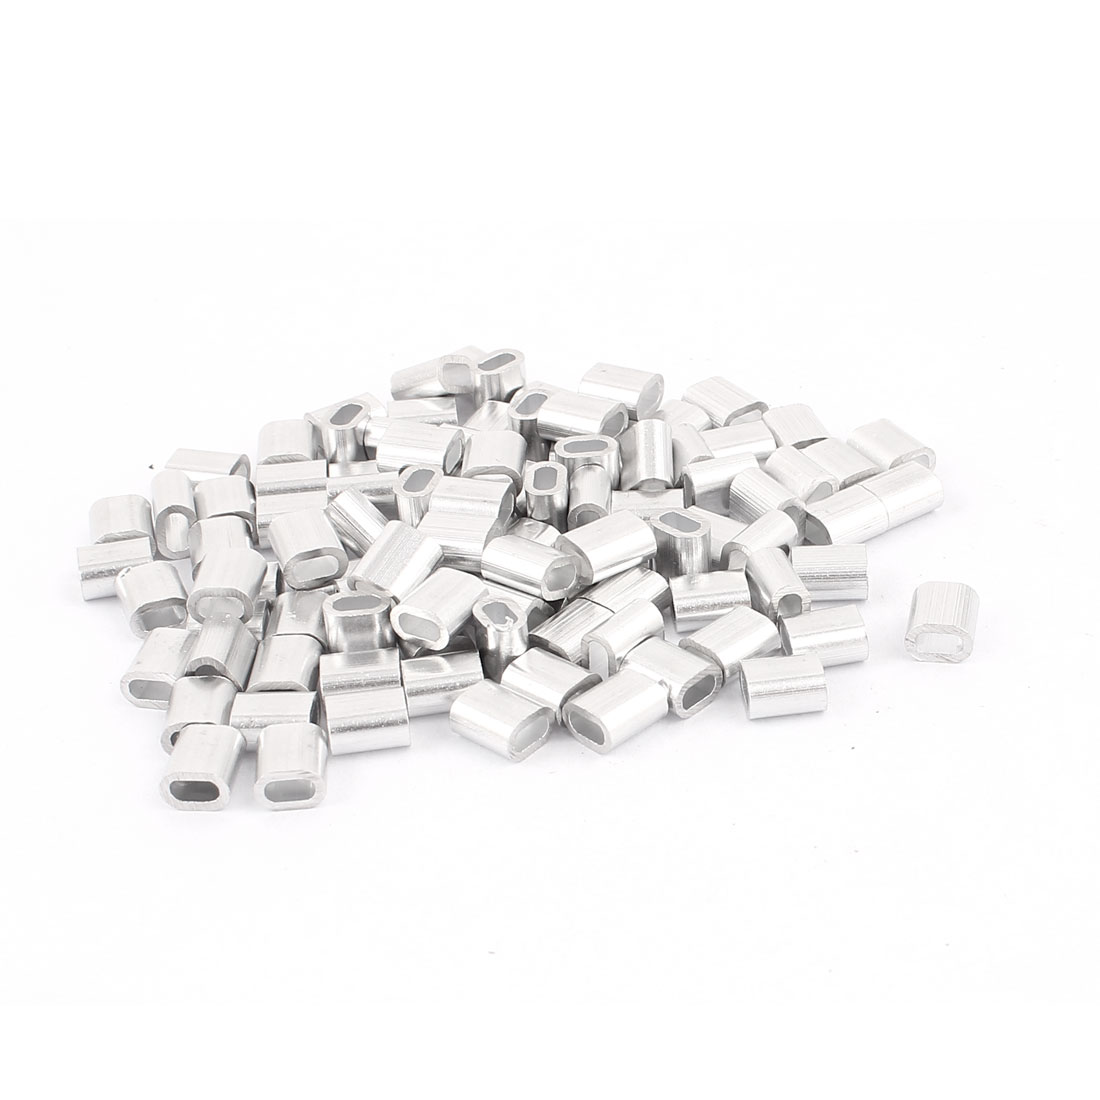 "2mm 5/64"" Steel Wire Rope Aluminum Ferrules Sleeves Silver Tone 100 Pcs"